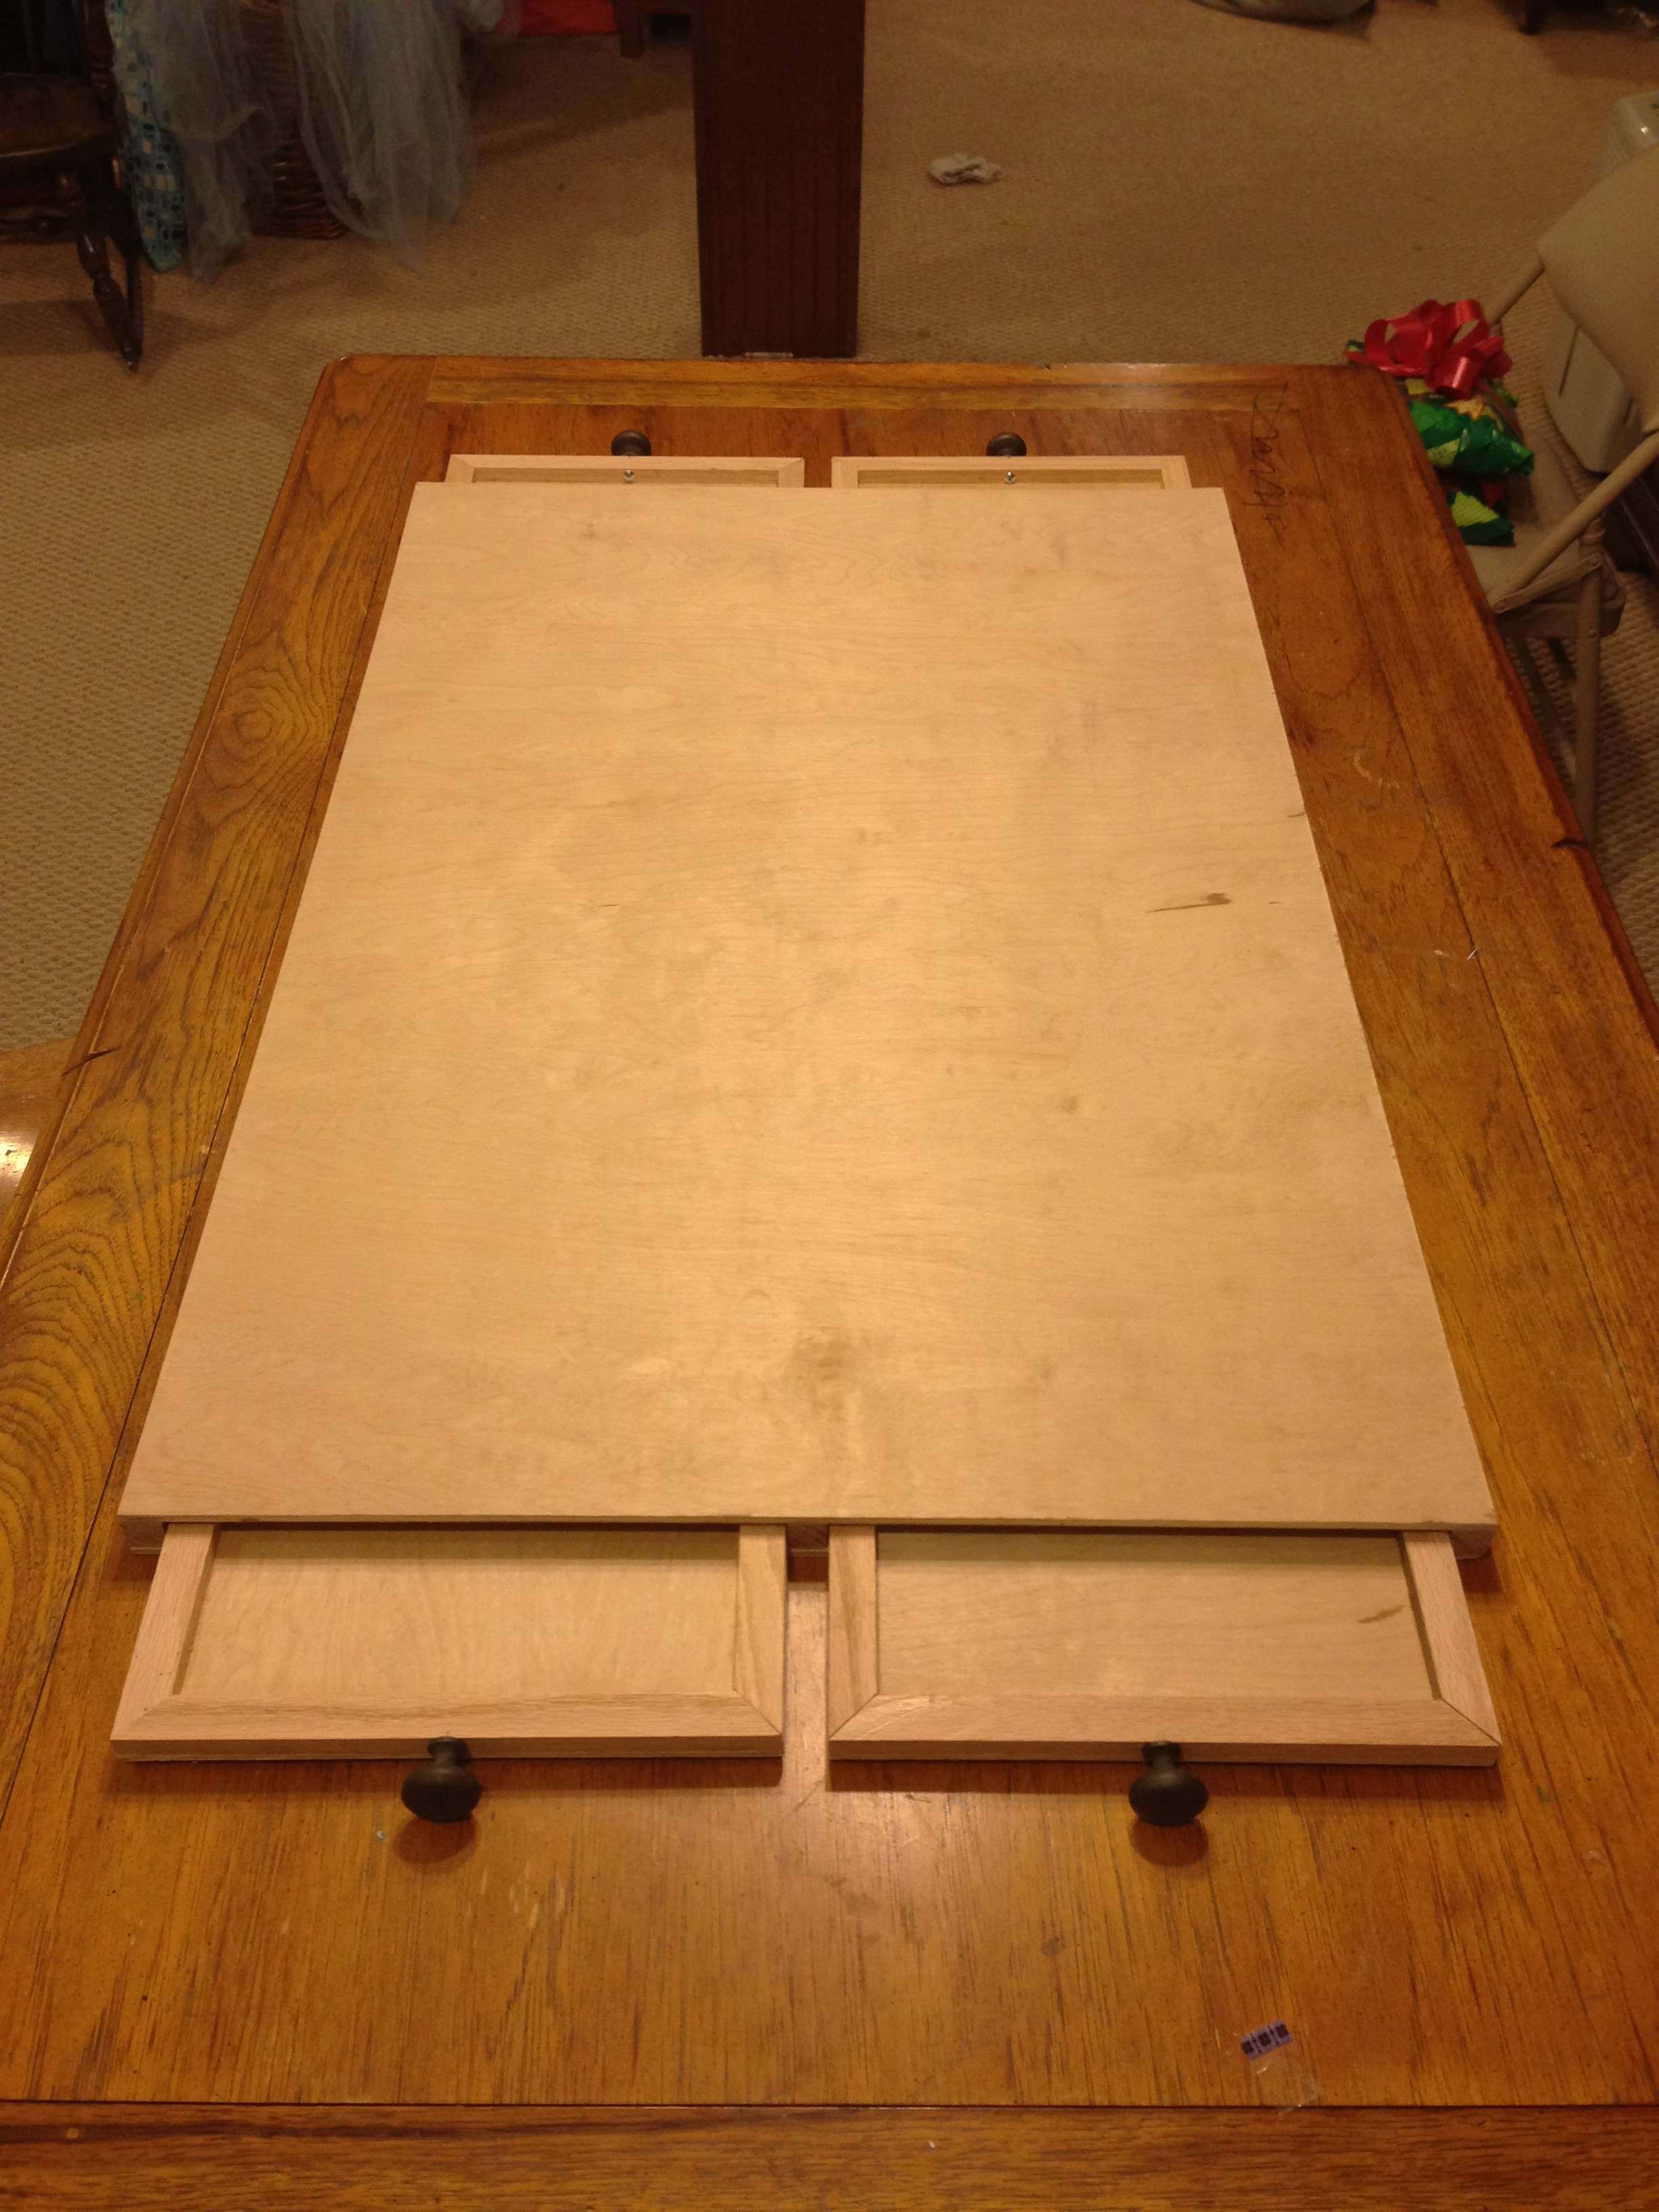 Best ideas about Puzzle Table DIY . Save or Pin The Ultimate Puzzle Board with Drawers Now.